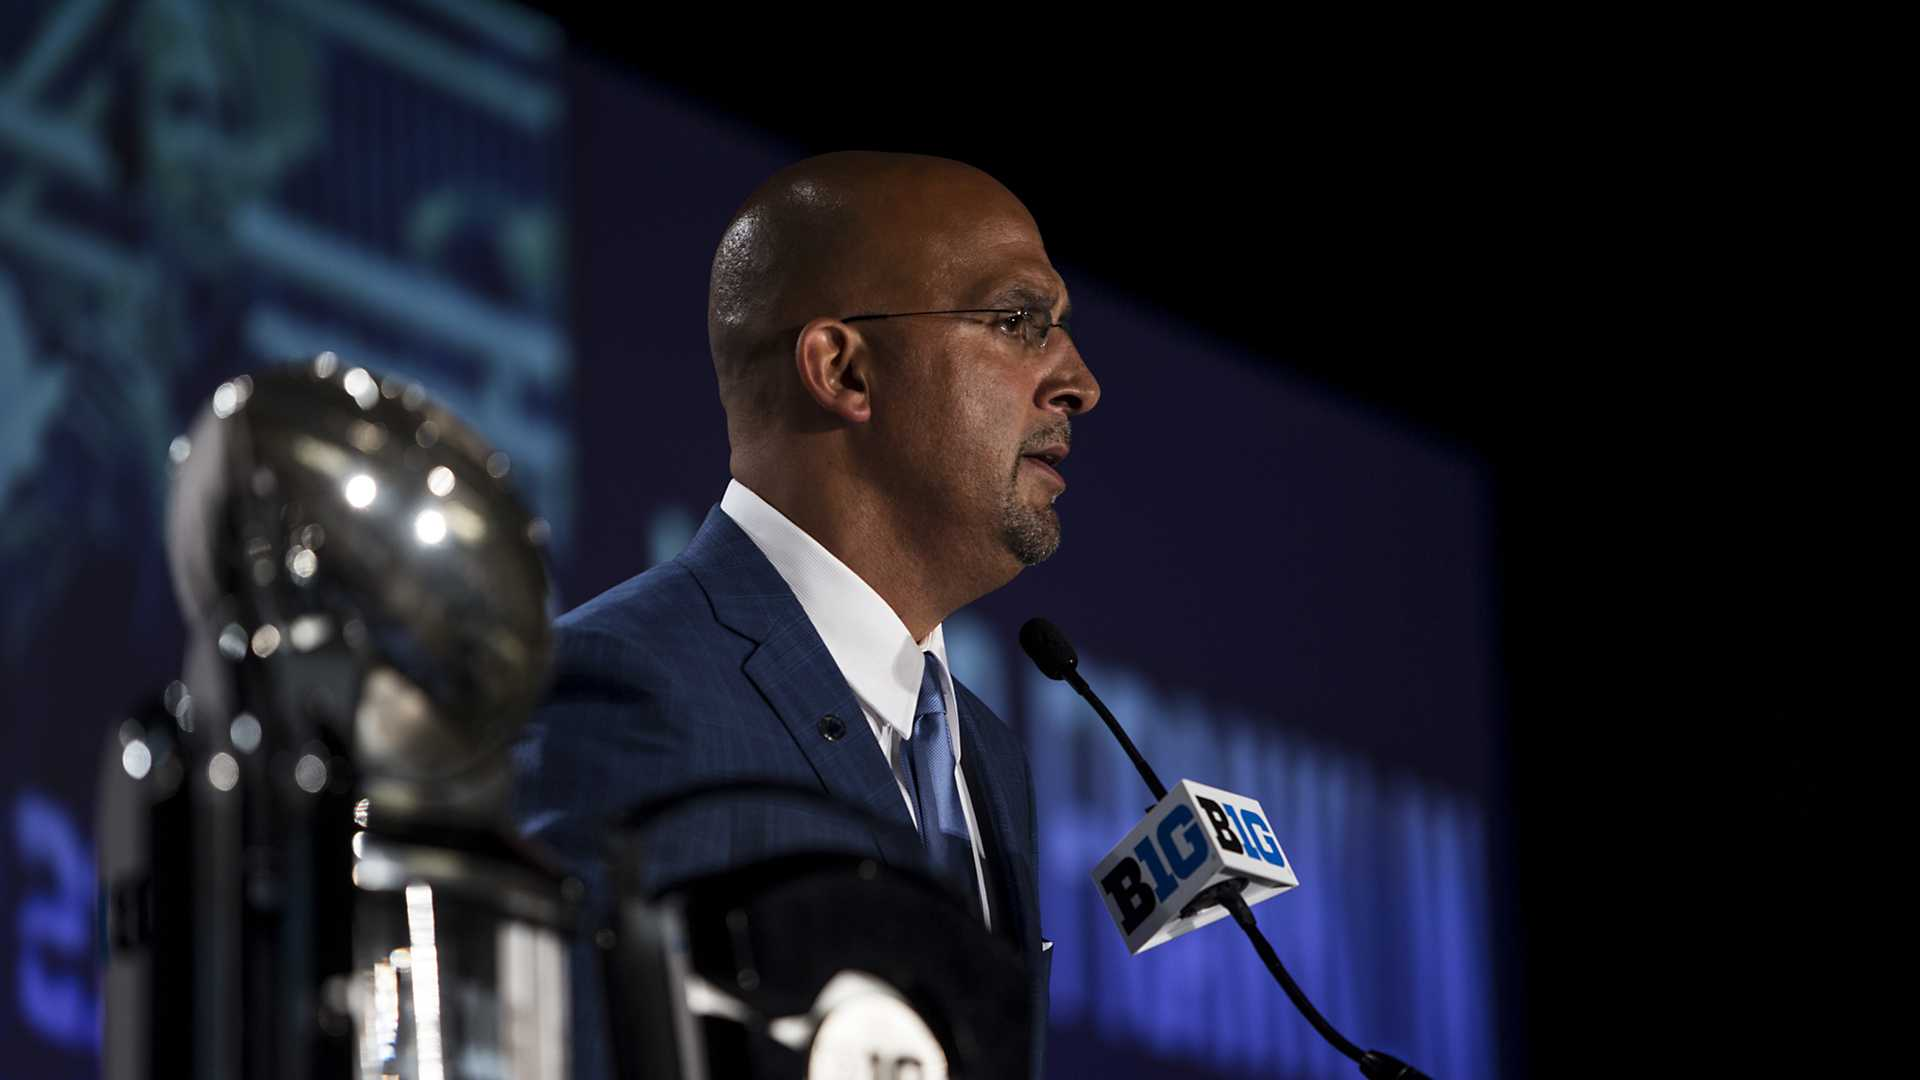 Penn State Head Coach James Franklin addresses the media during Big Ten Football Media Days in Chicago on Monday, July 23, 2018. (Nick Rohlman/The Daily Iowan)